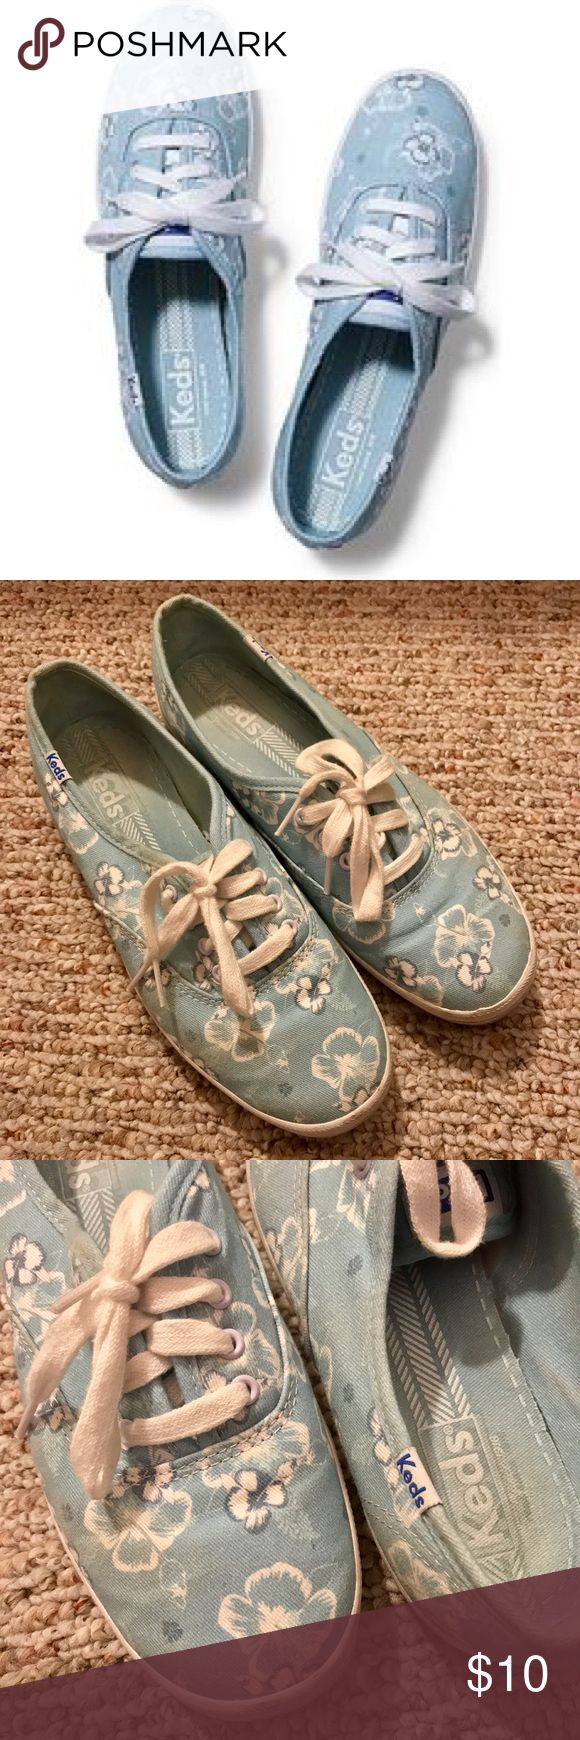 Keds Champion Blue Floral Sneakers 7.5 Cute blue floral Keds sneakers. Right for the spring/summer season. Very light and very easy to walk! Size 7.5. Retail price $45. Keds Shoes Sneakers